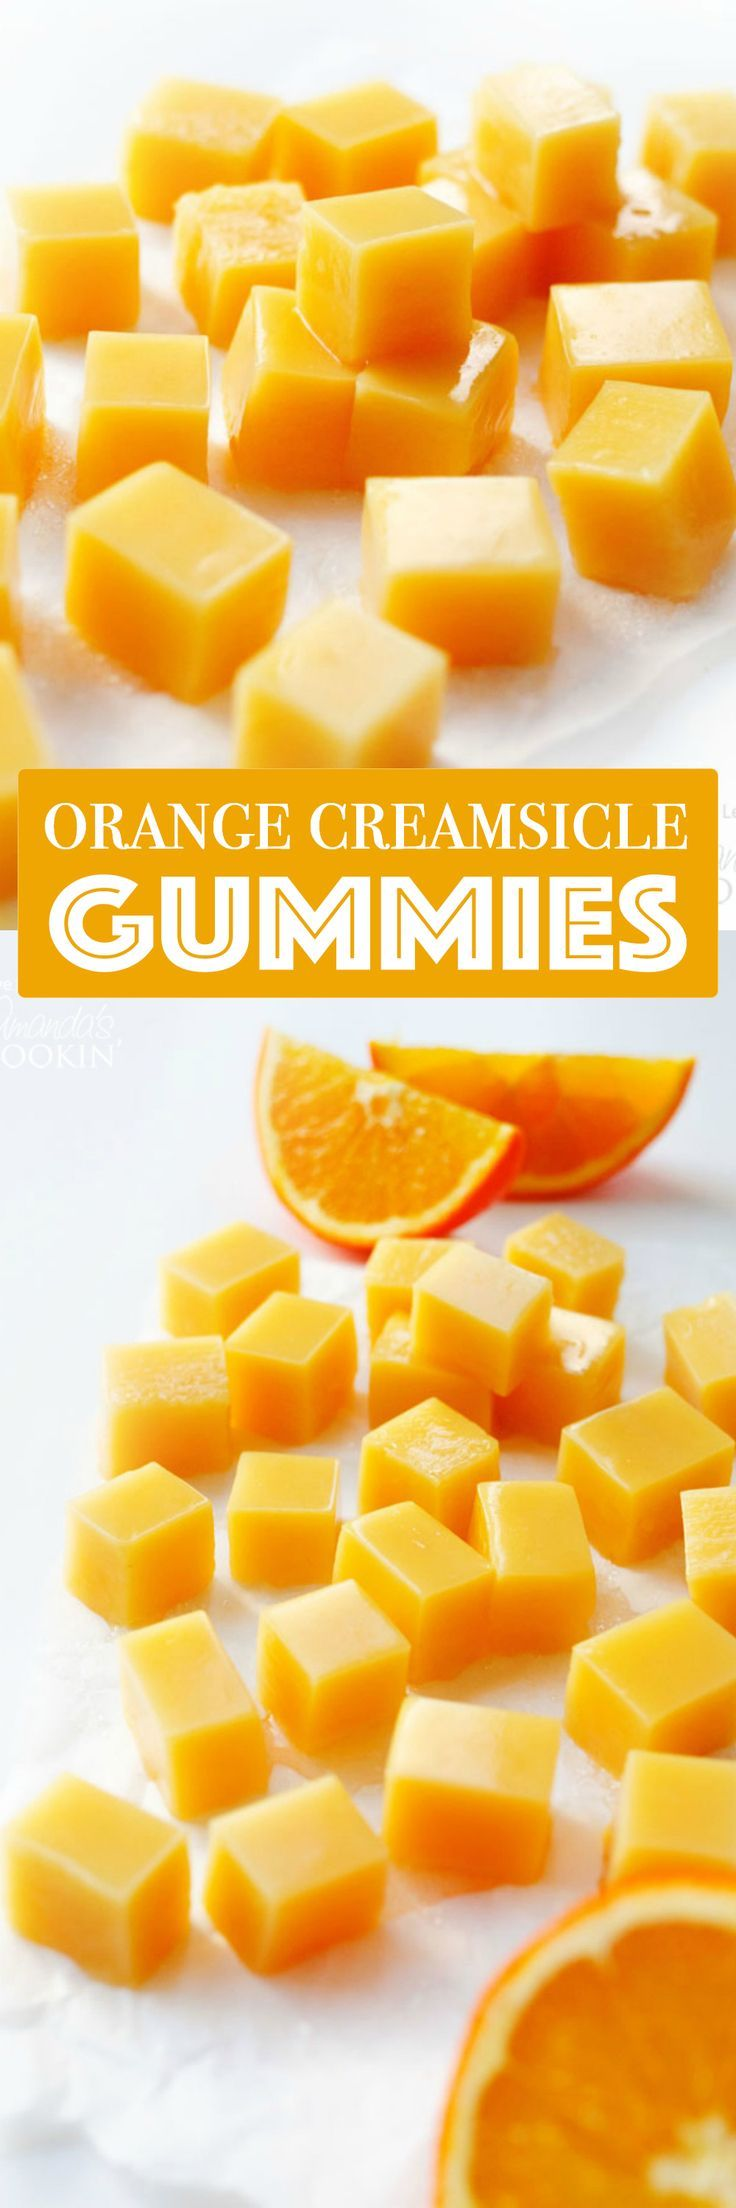 You can make your own Orange Creamsicle Homemade Gummies with just a few ingredients (and no fancy thermometers or steps required!)